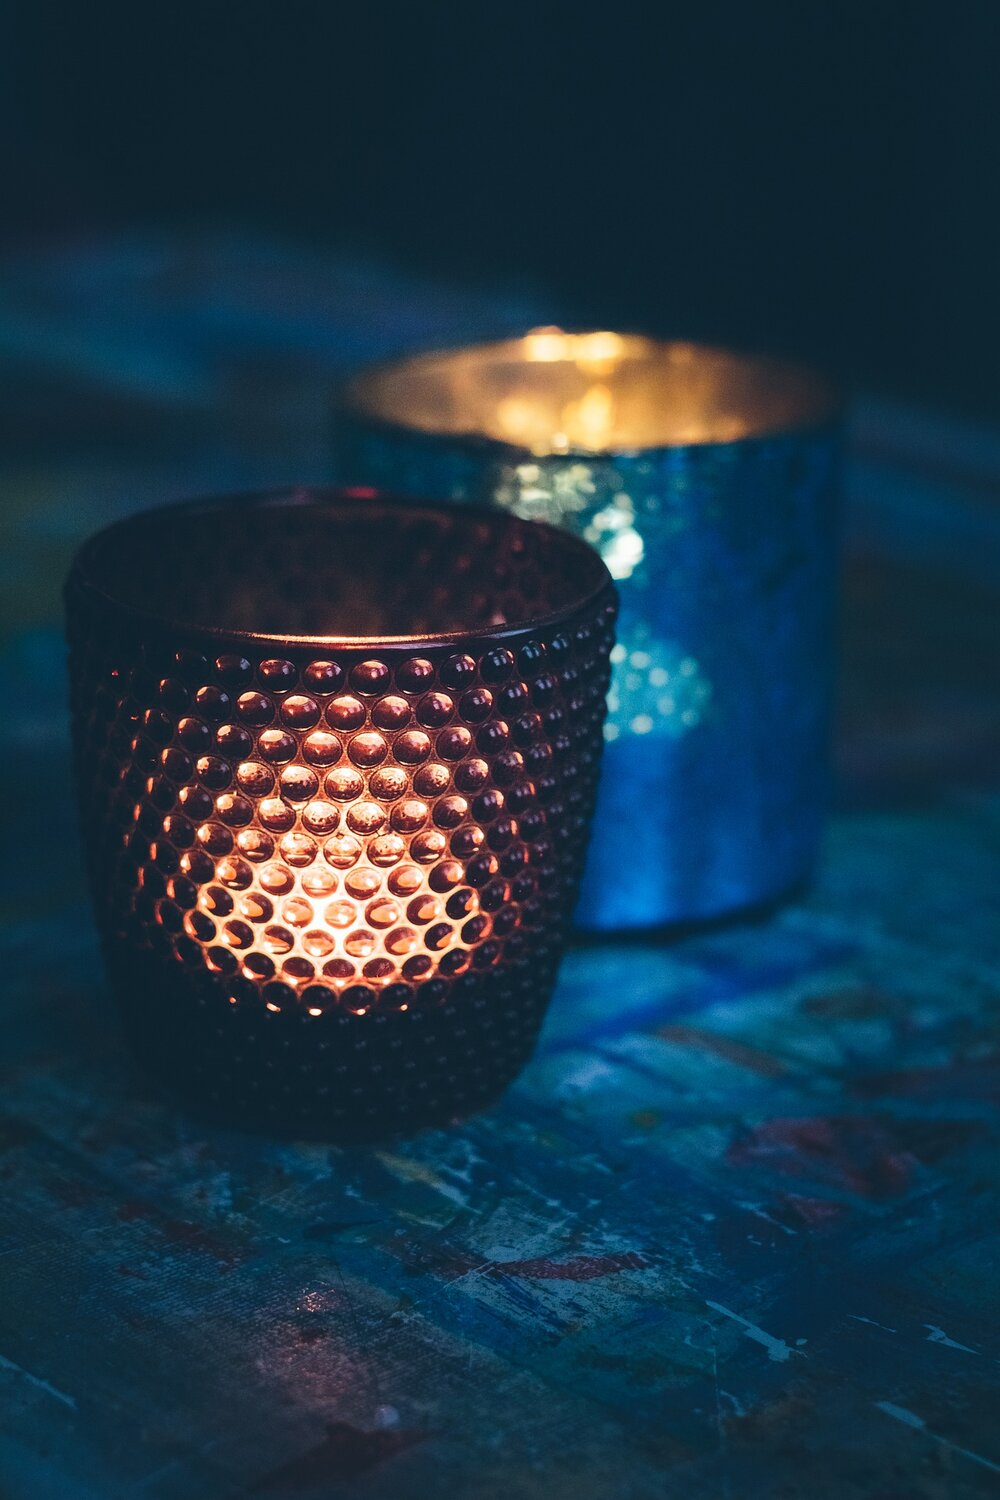 Photo of red candle in votive in front and blue votive in rear on textured surface by KatinkavomWolfenmond from Pixabay